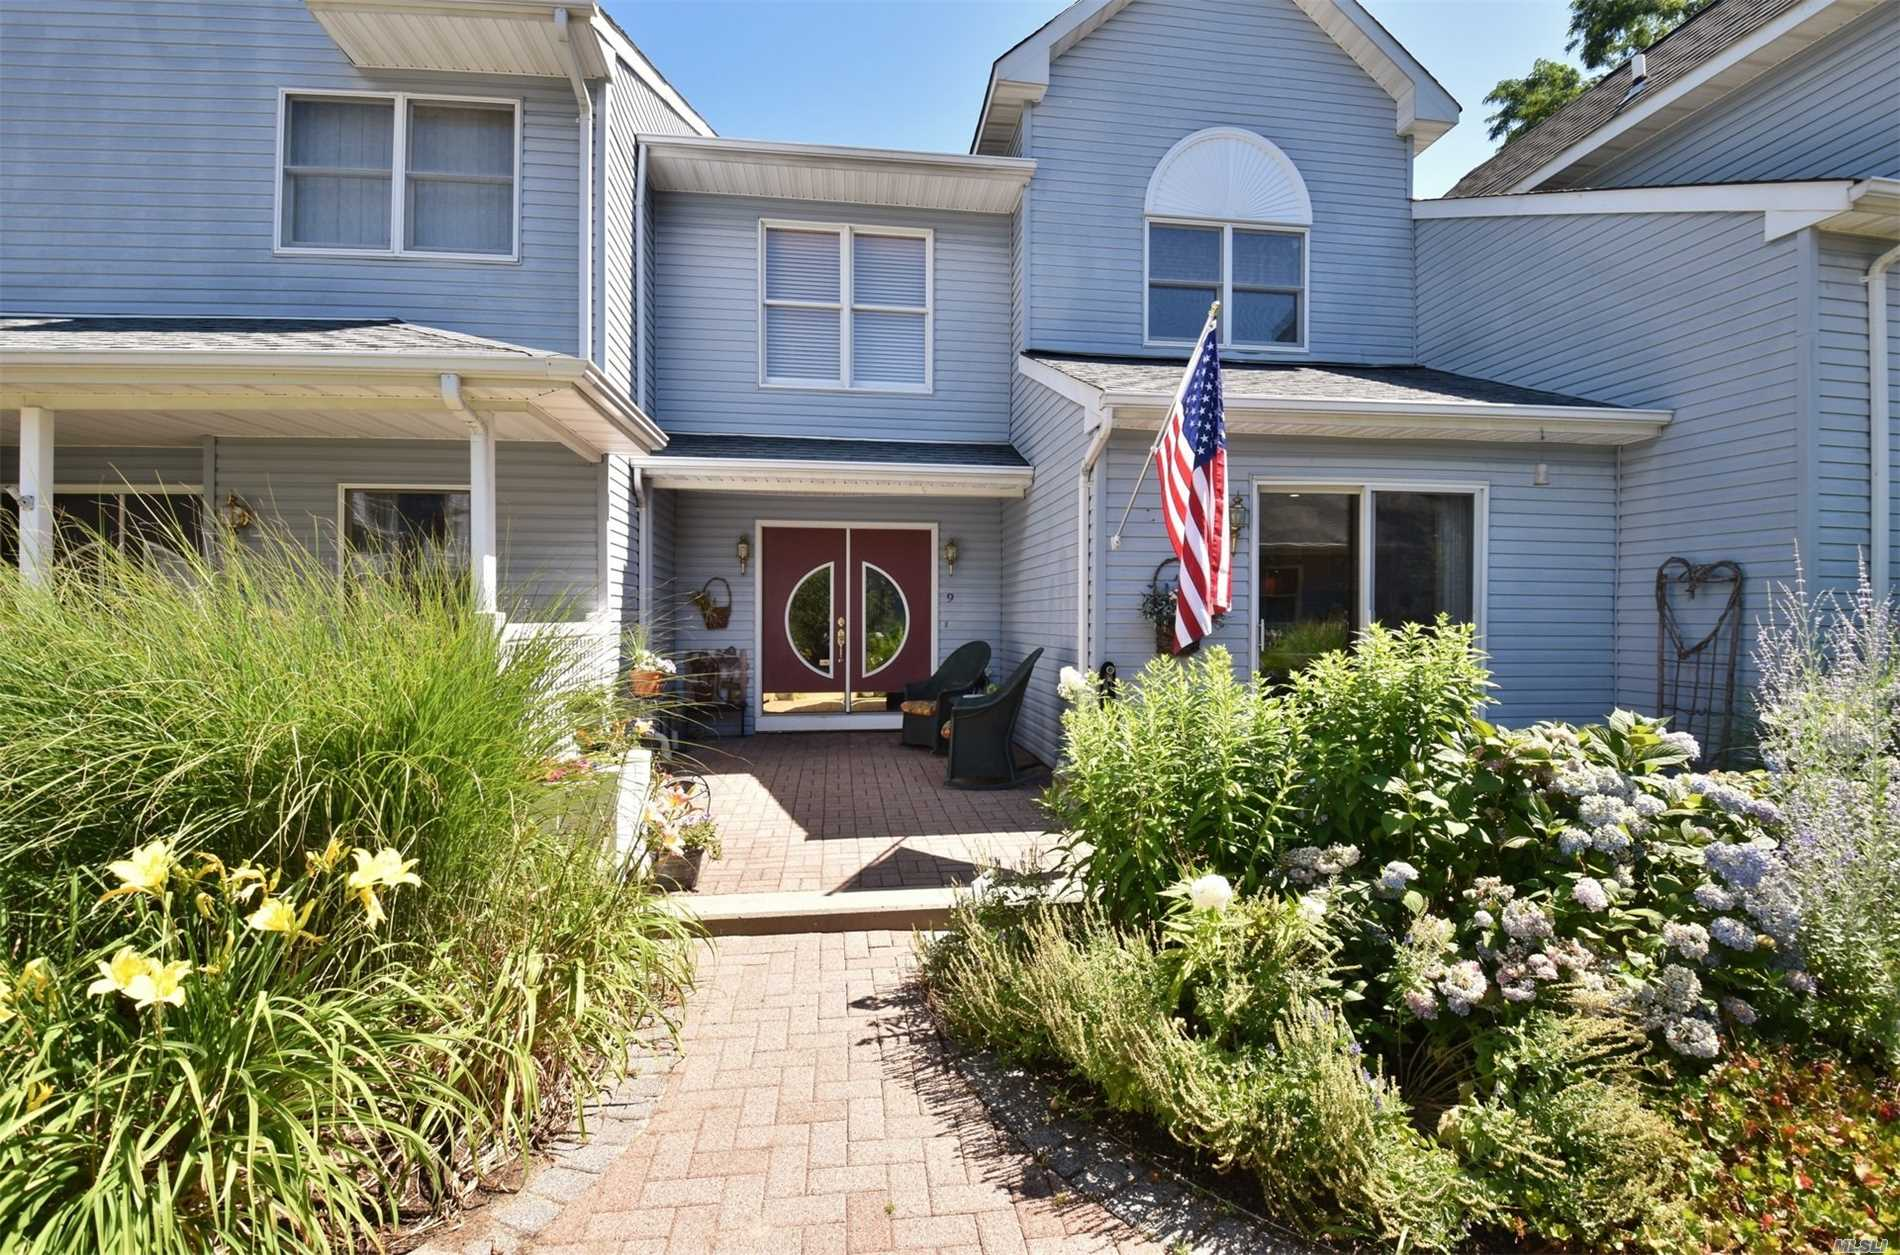 Property for sale at 9 Courtyard Cir, Centerport,  NY 11721